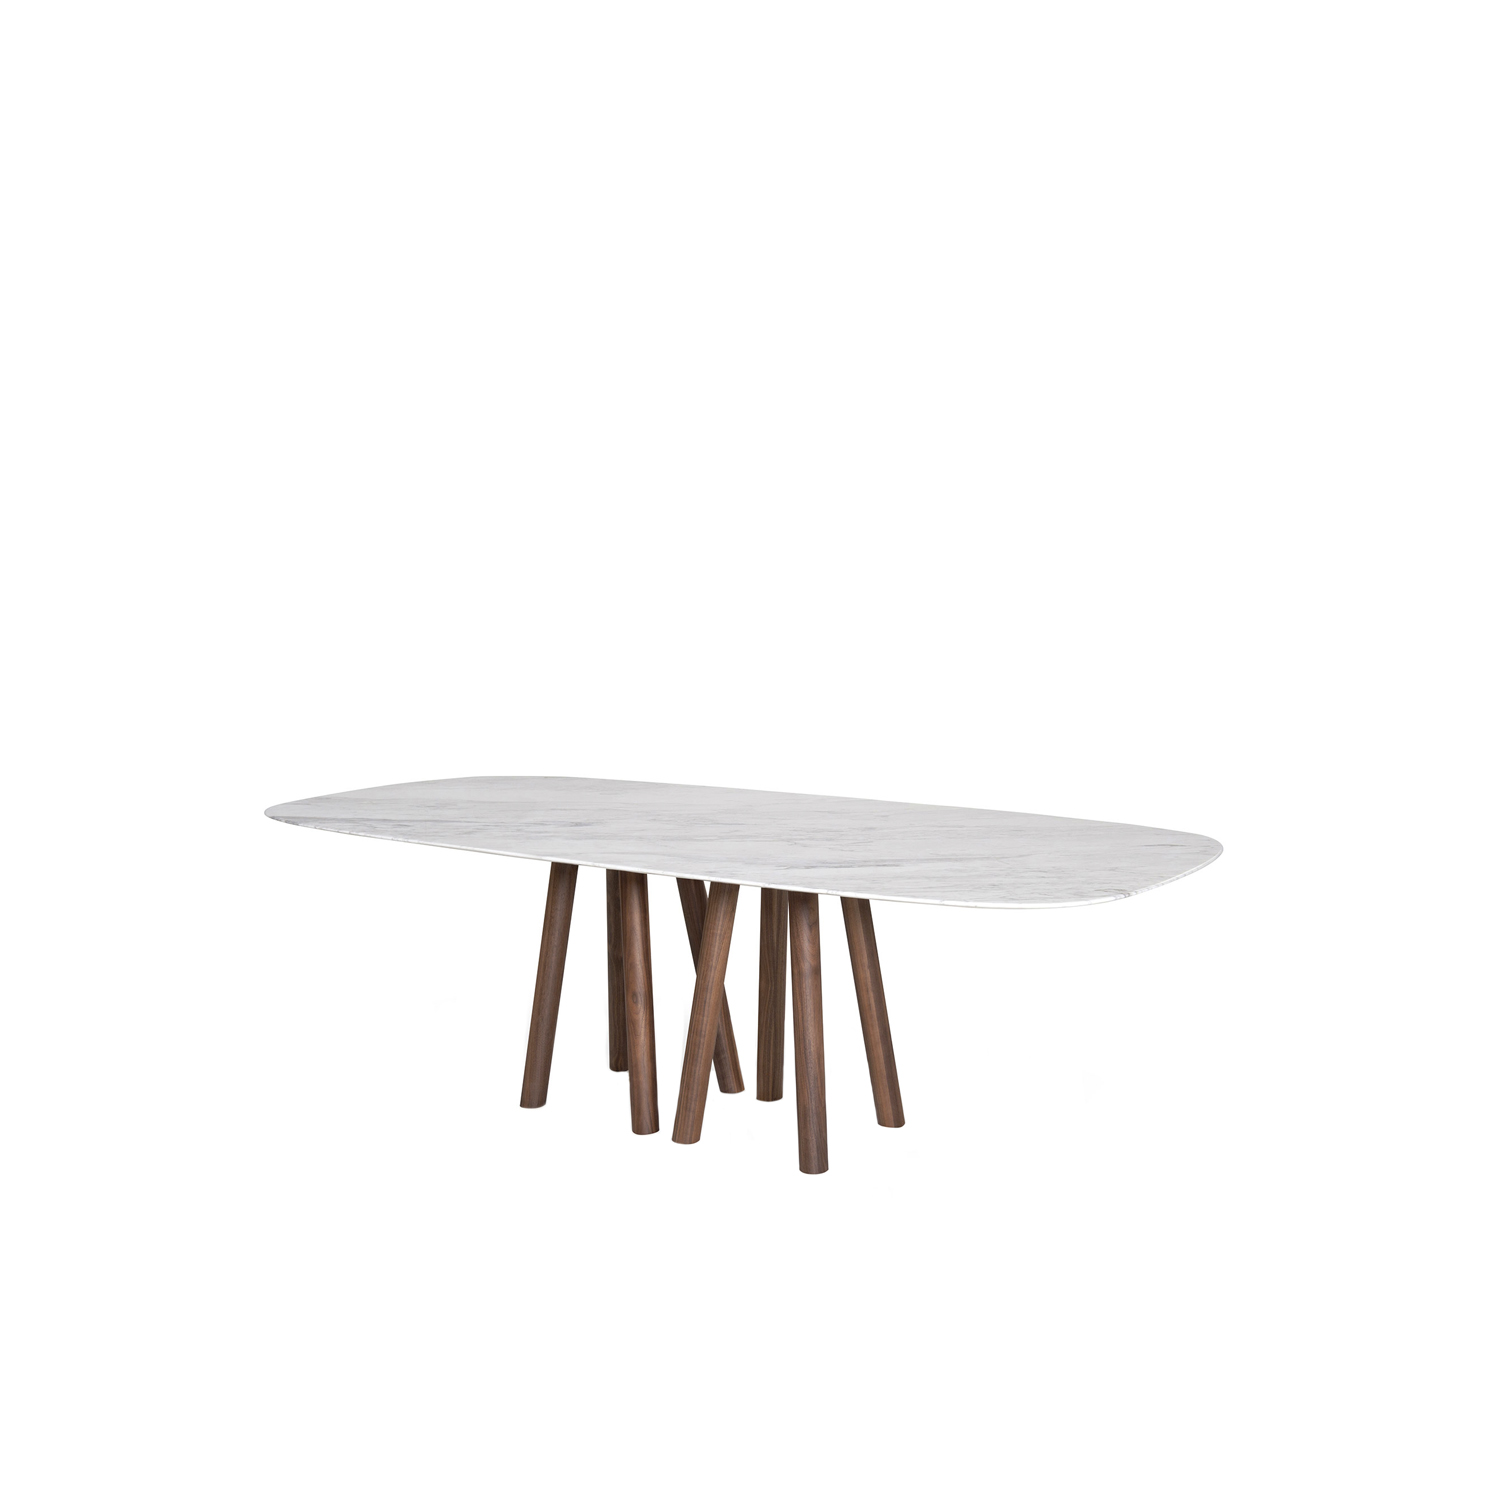 Mos-I-Ko 001 Fm Table - Table in various sizes with shaped marble top - base